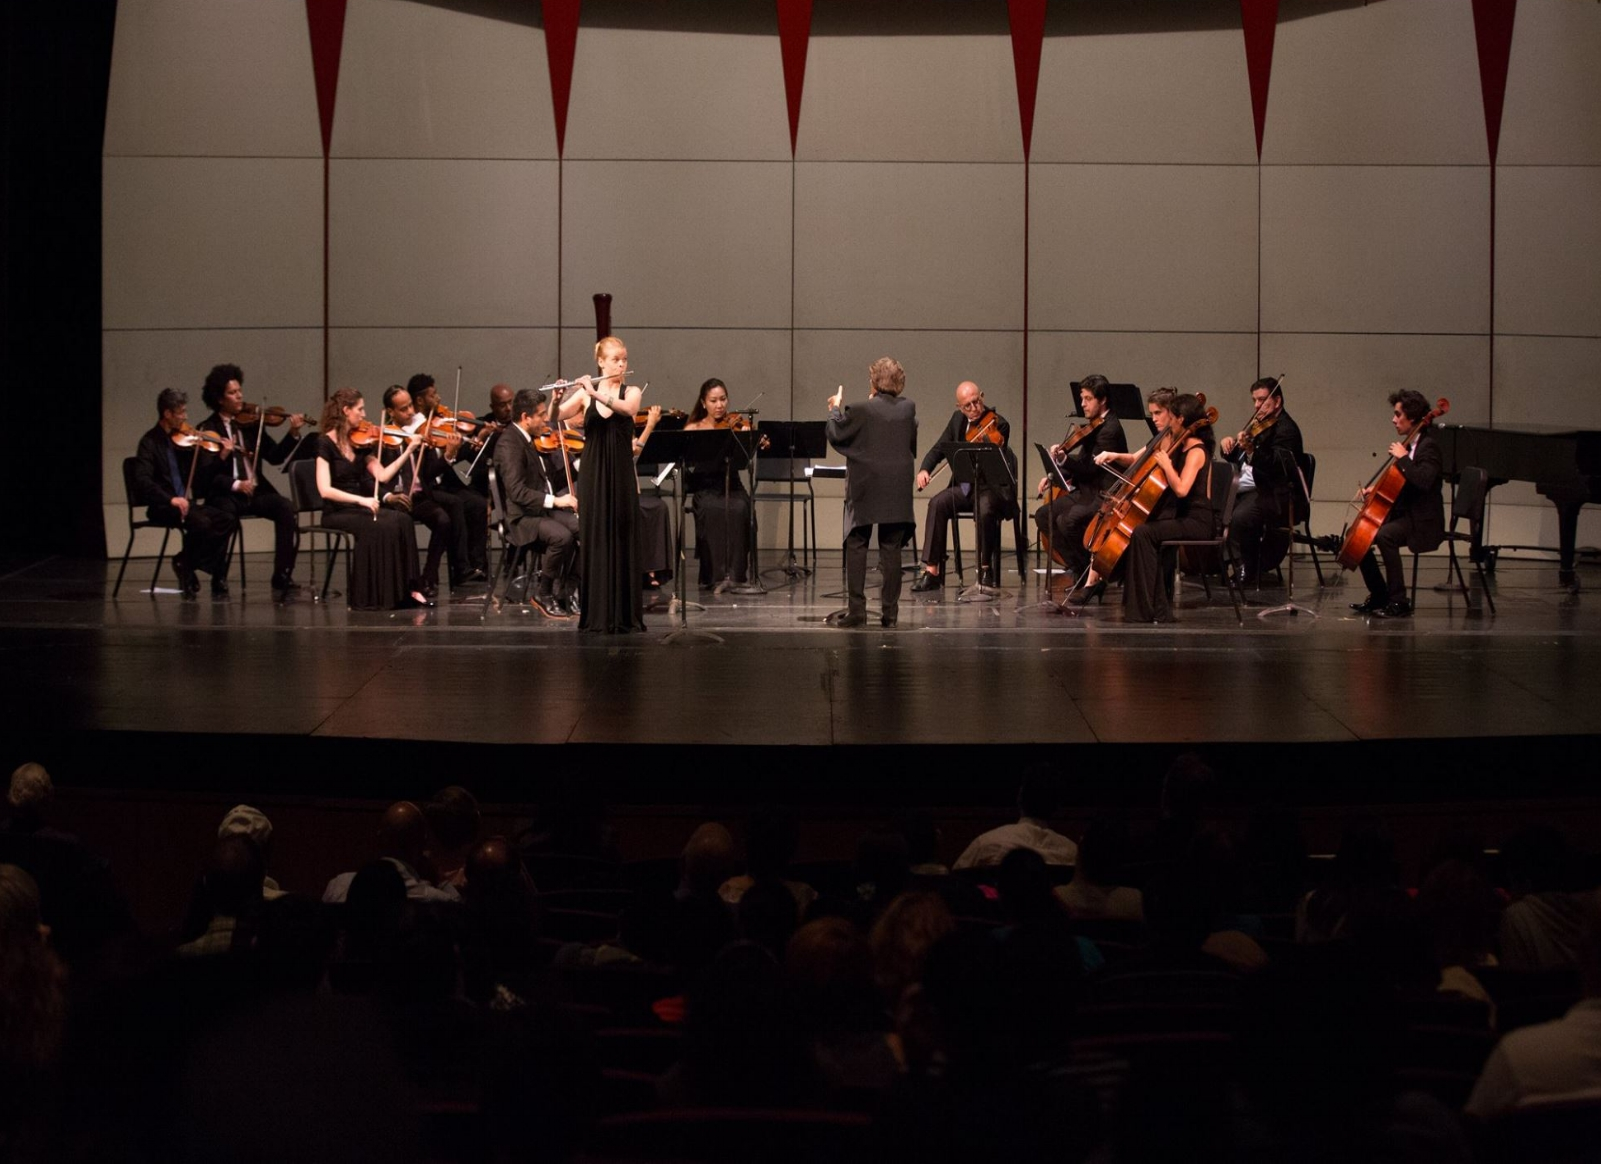 Tania León conducting the Association of Dominican Classical Artists, performing works by Amy Beach